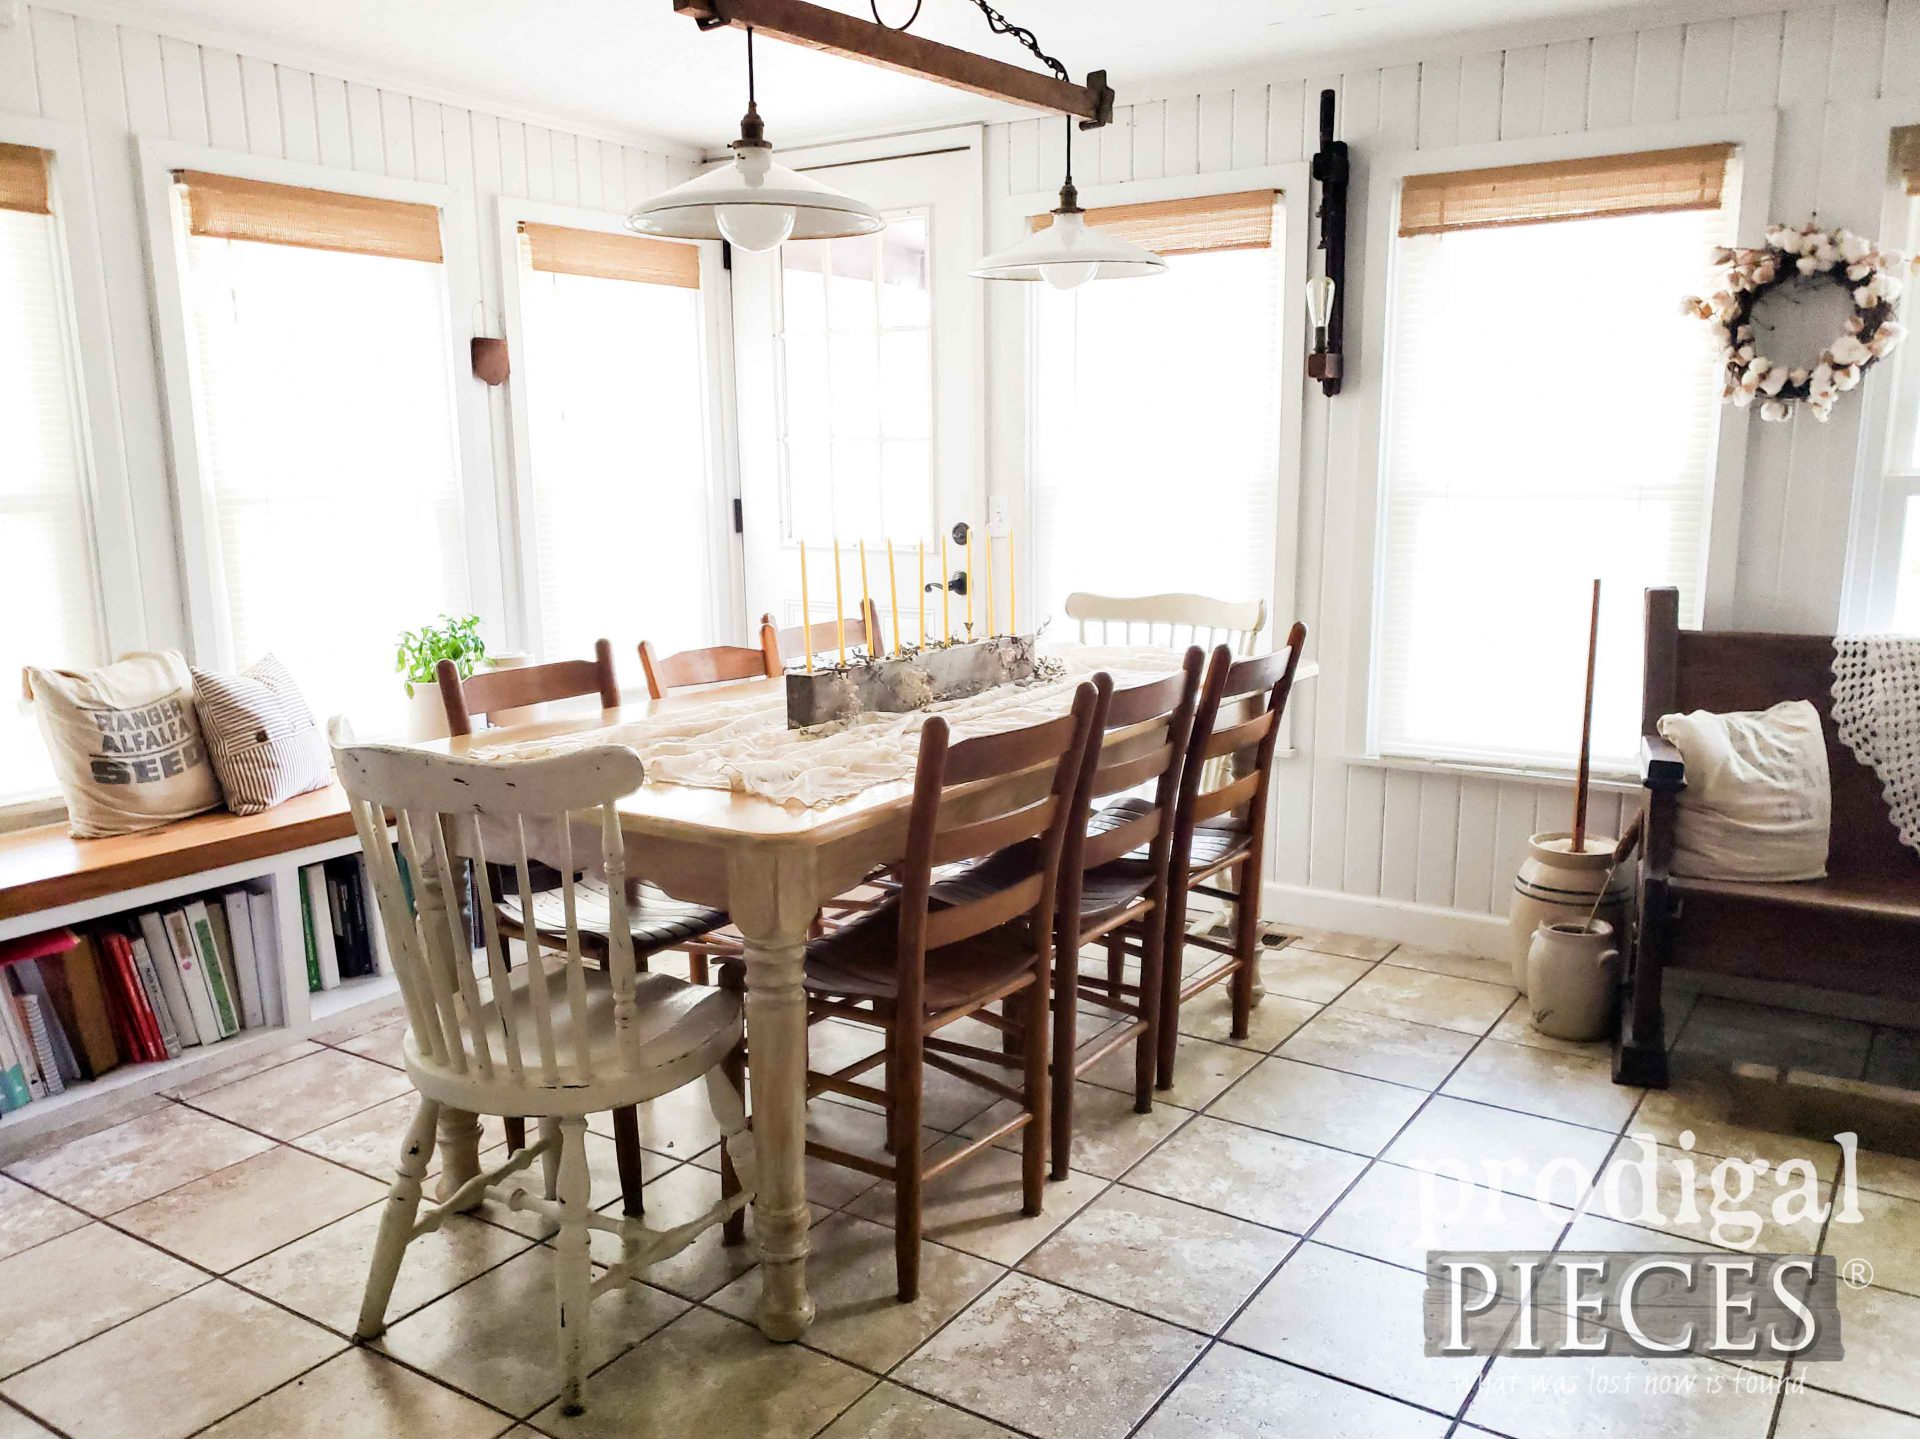 Farmhouse Style Dining Room with Upcycled Pallet Farmhouse Decor by Larissa of Prodigal Pieces | prodigalpieces.com #prodigalpieces #diningroom #farmhouse #home #homedecor